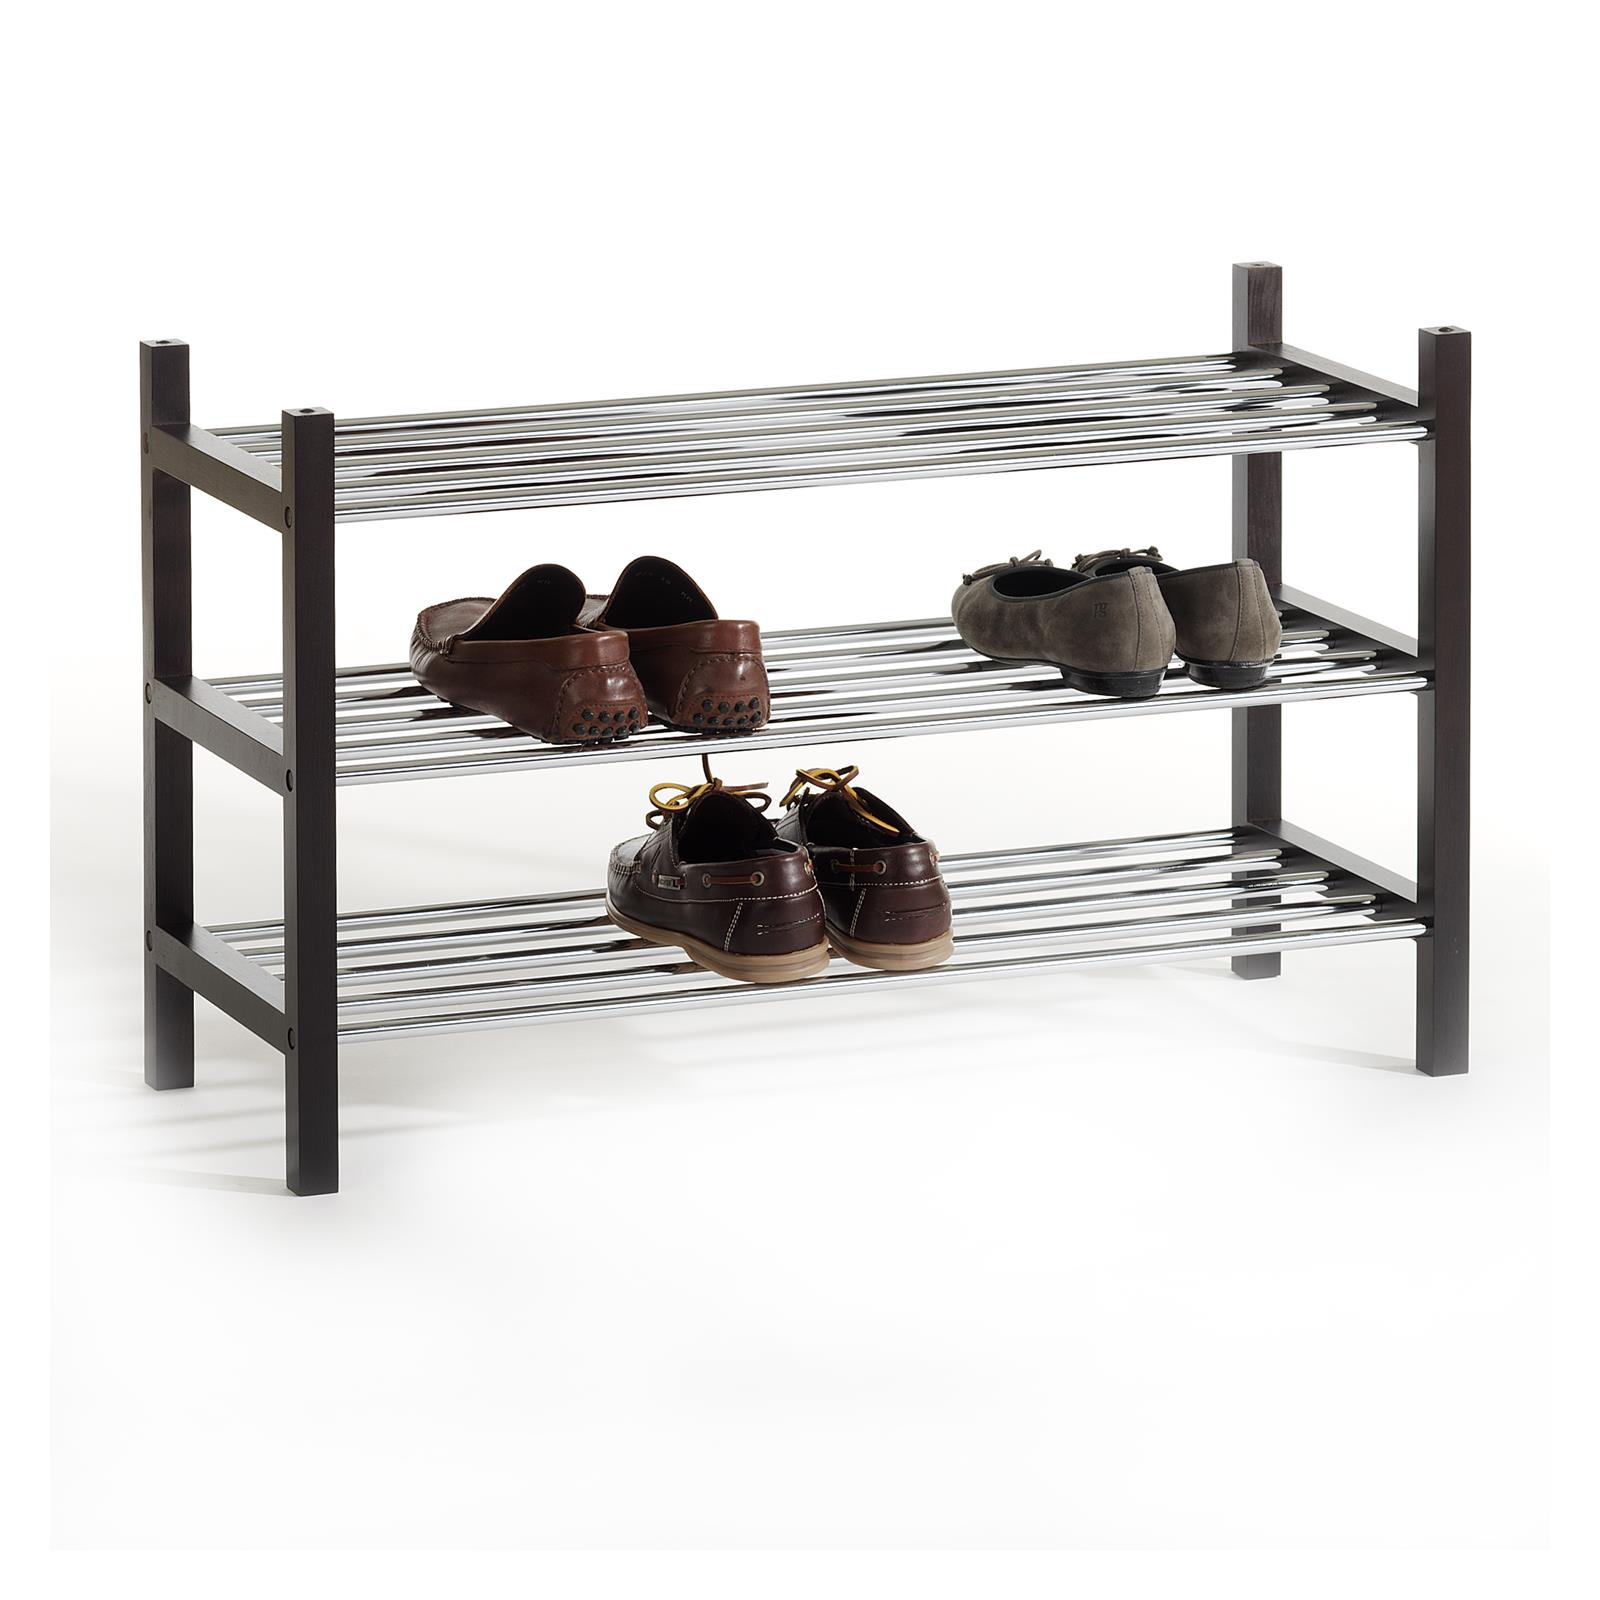 Etagere rangement banc a chaussures 3 tablettes neuf - Etagere a chaussures ...